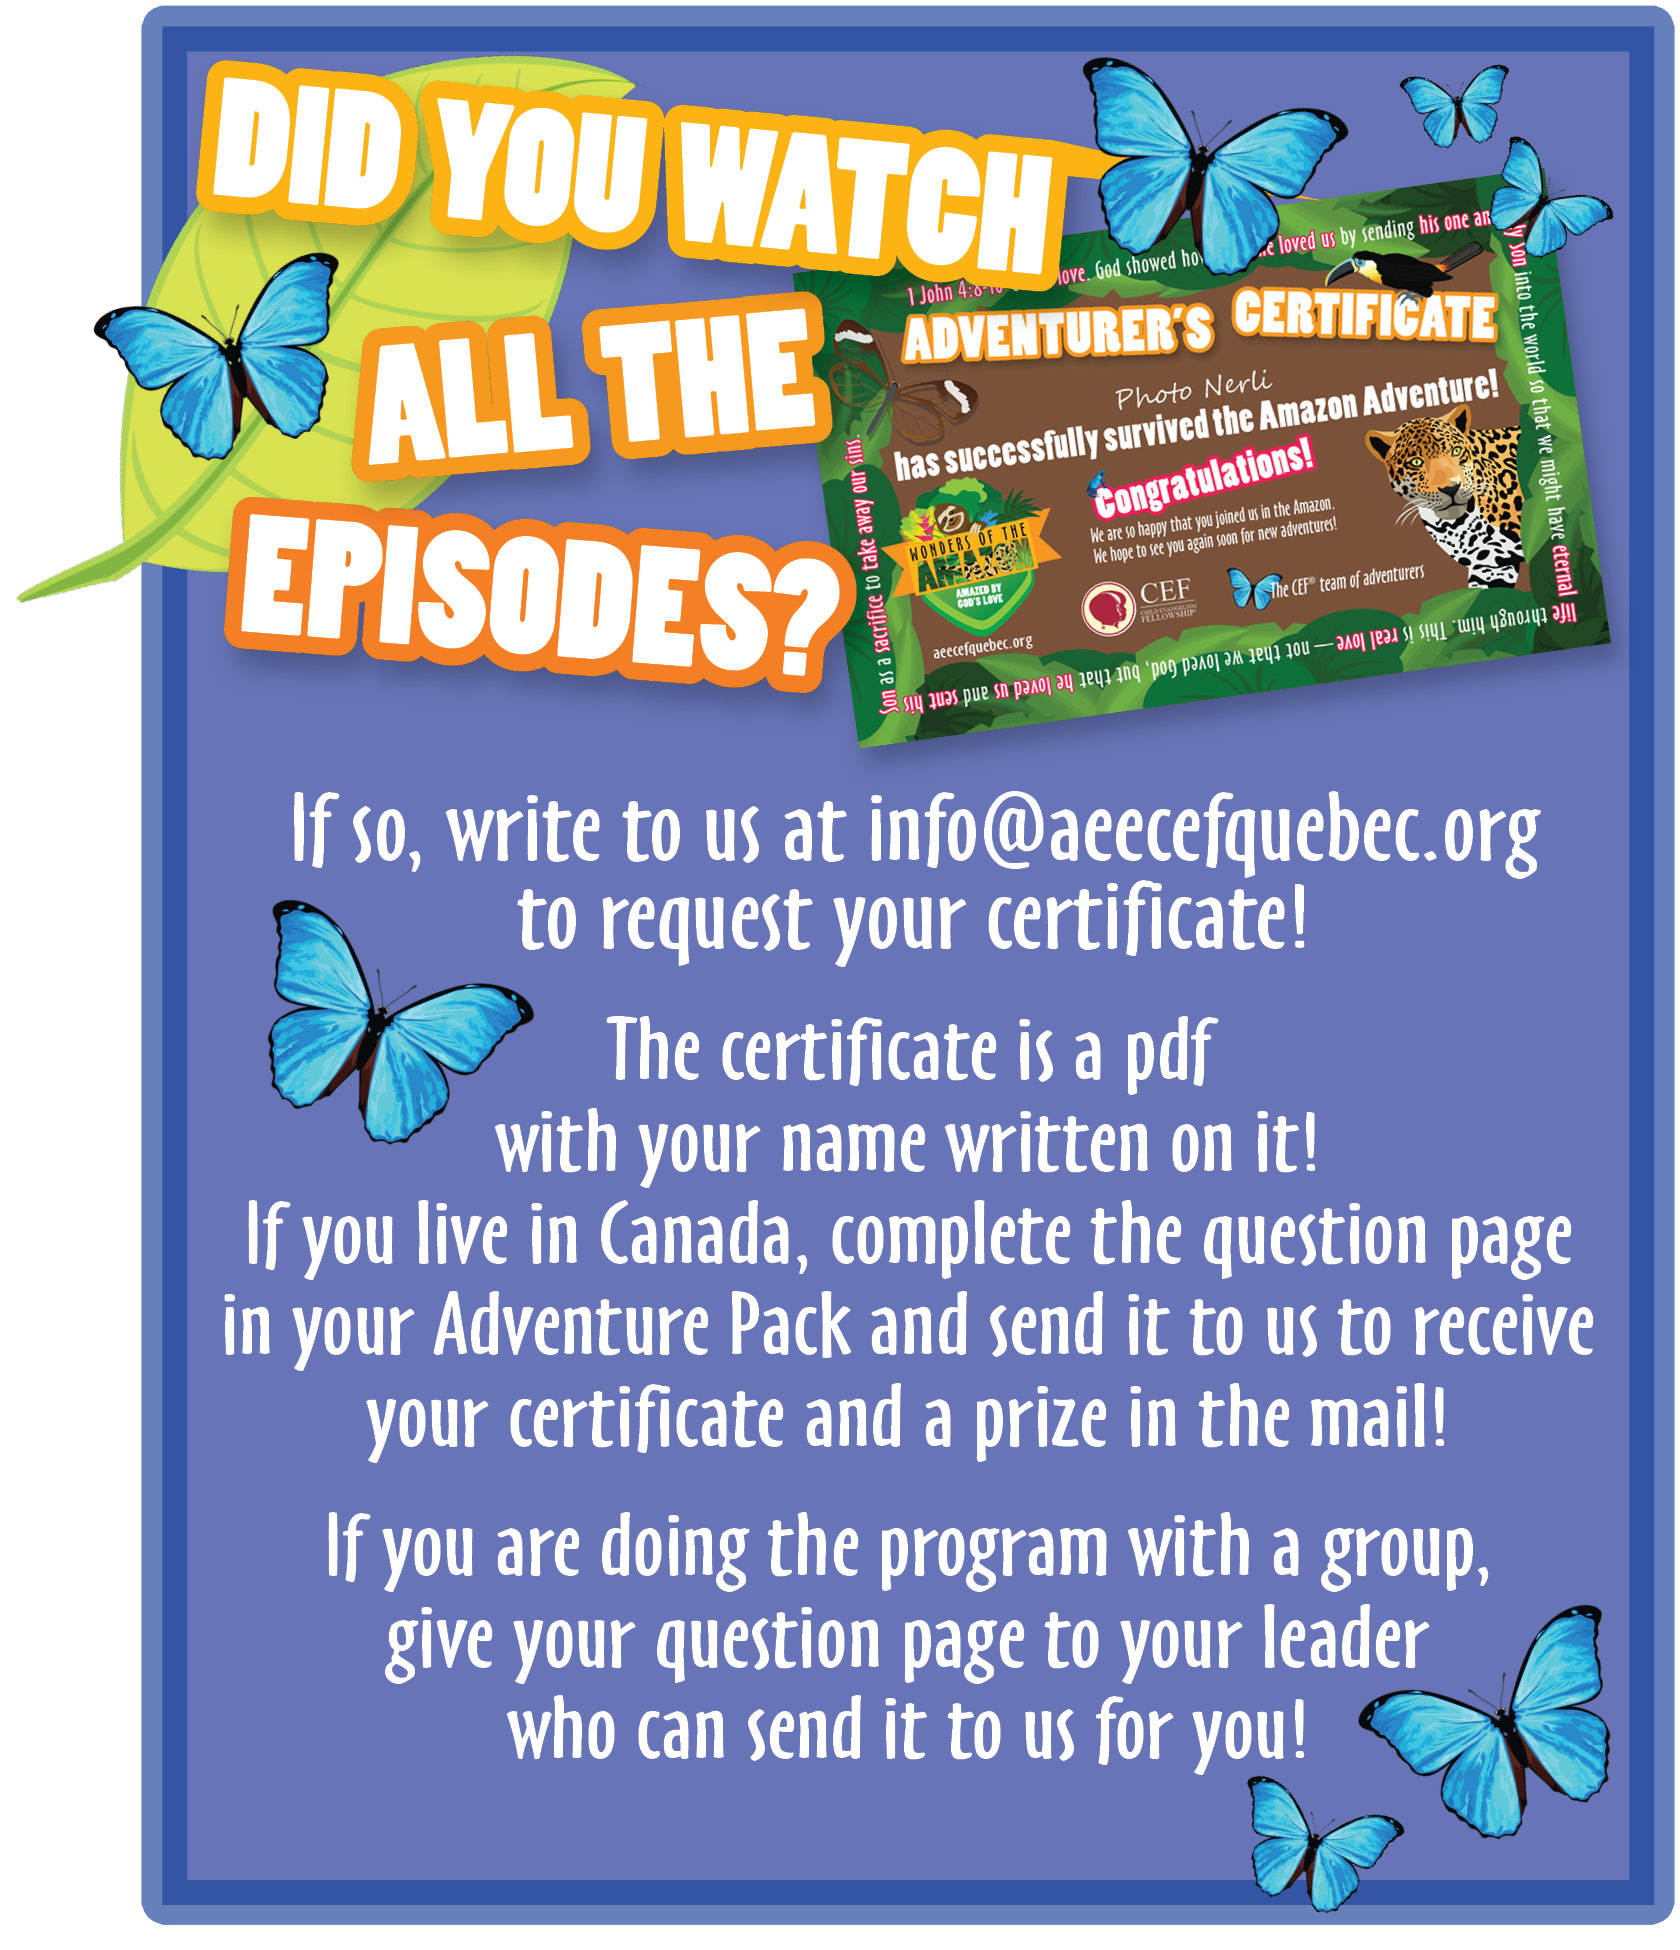 How to receive your certificate